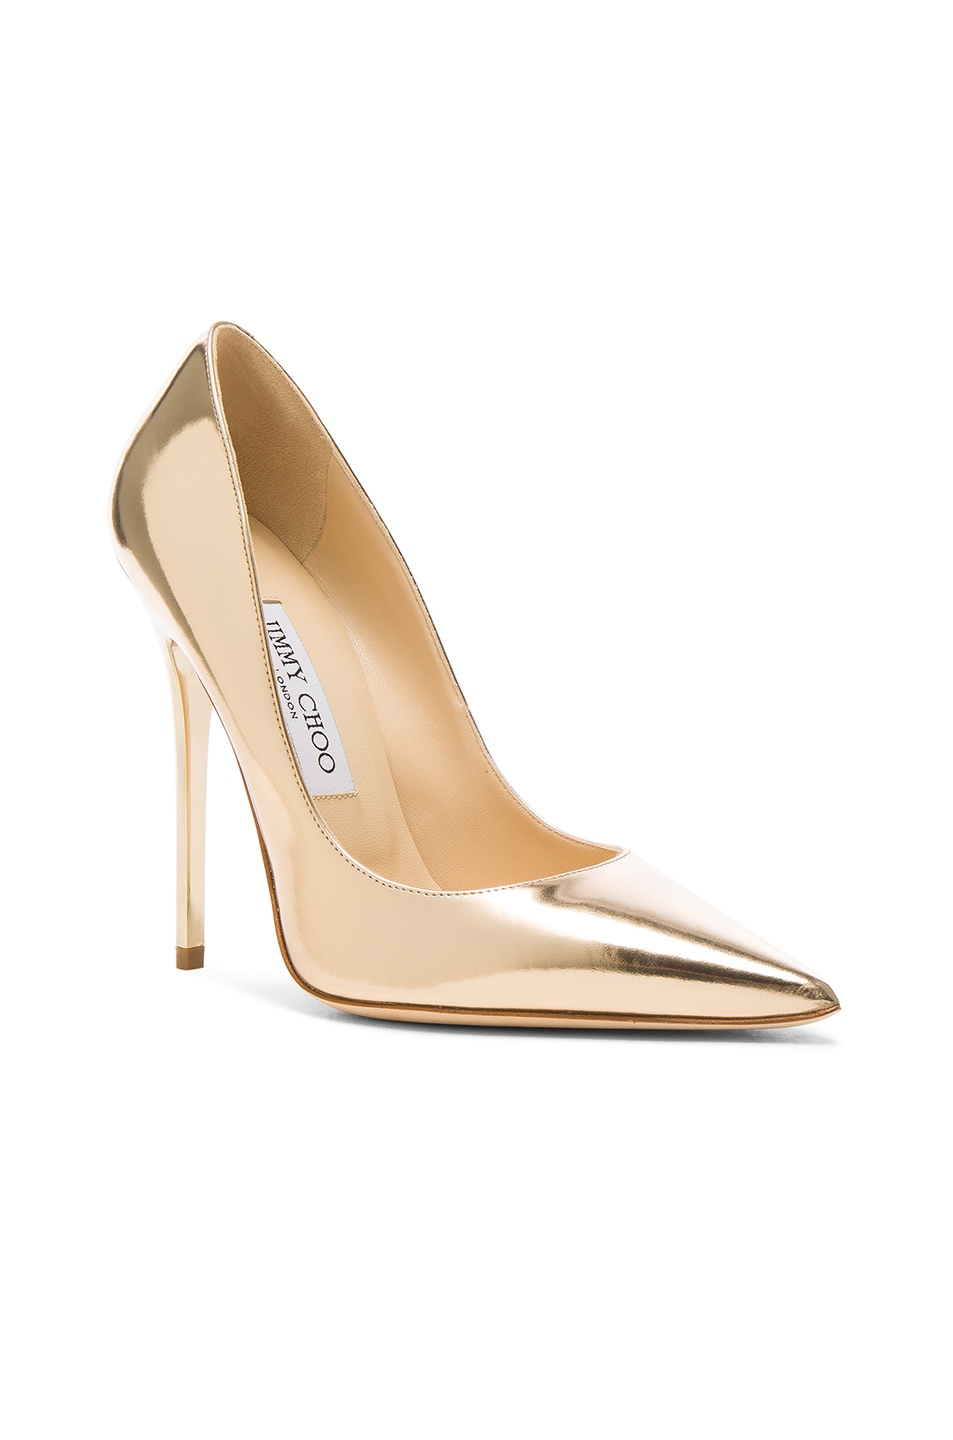 Image 2 of Jimmy Choo Leather Anouk Heels in Dore